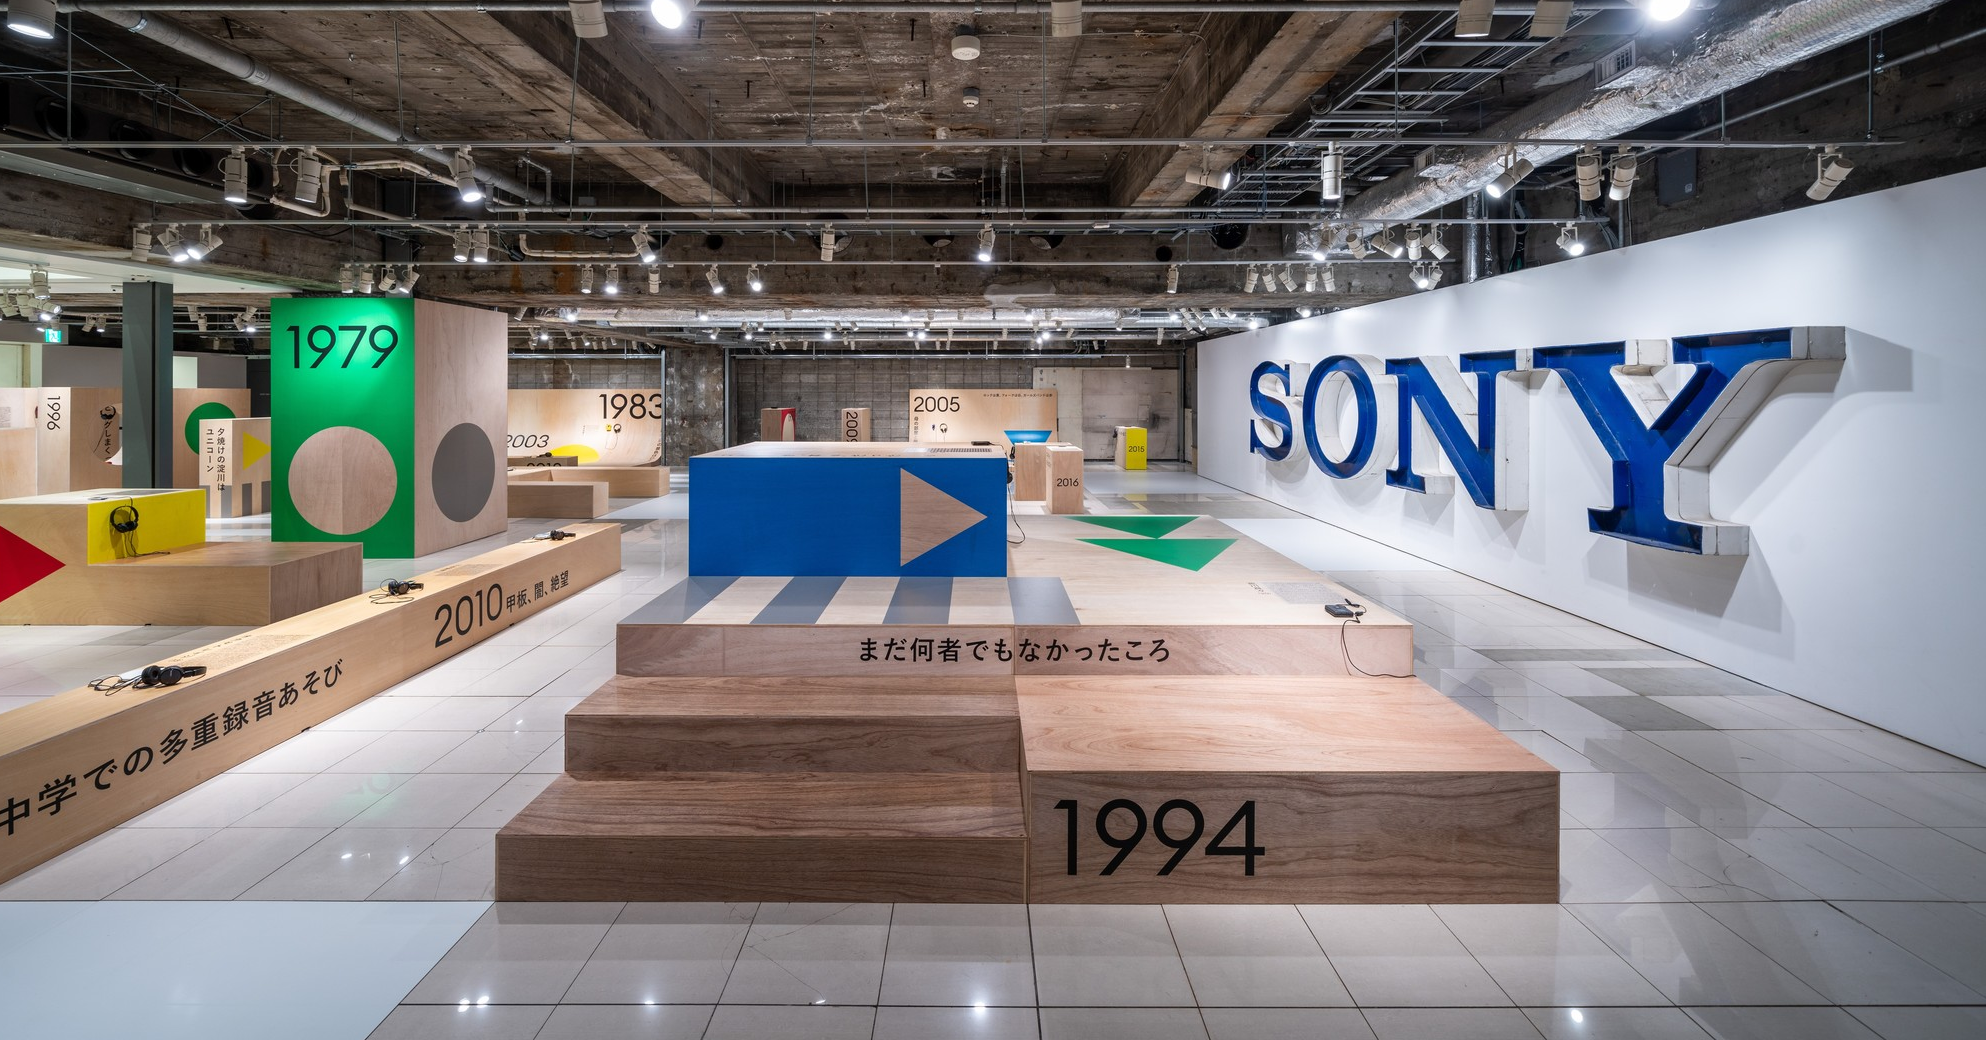 Ginza Sony Park, Tokyo Ska Paradise Orchestra, Musician, Music, Photography, , Mr. Children, Instagram, Sony Corporation, , exhibition, Interior design, Building, Design, Architecture, Exhibition, Graphics, Sport venue